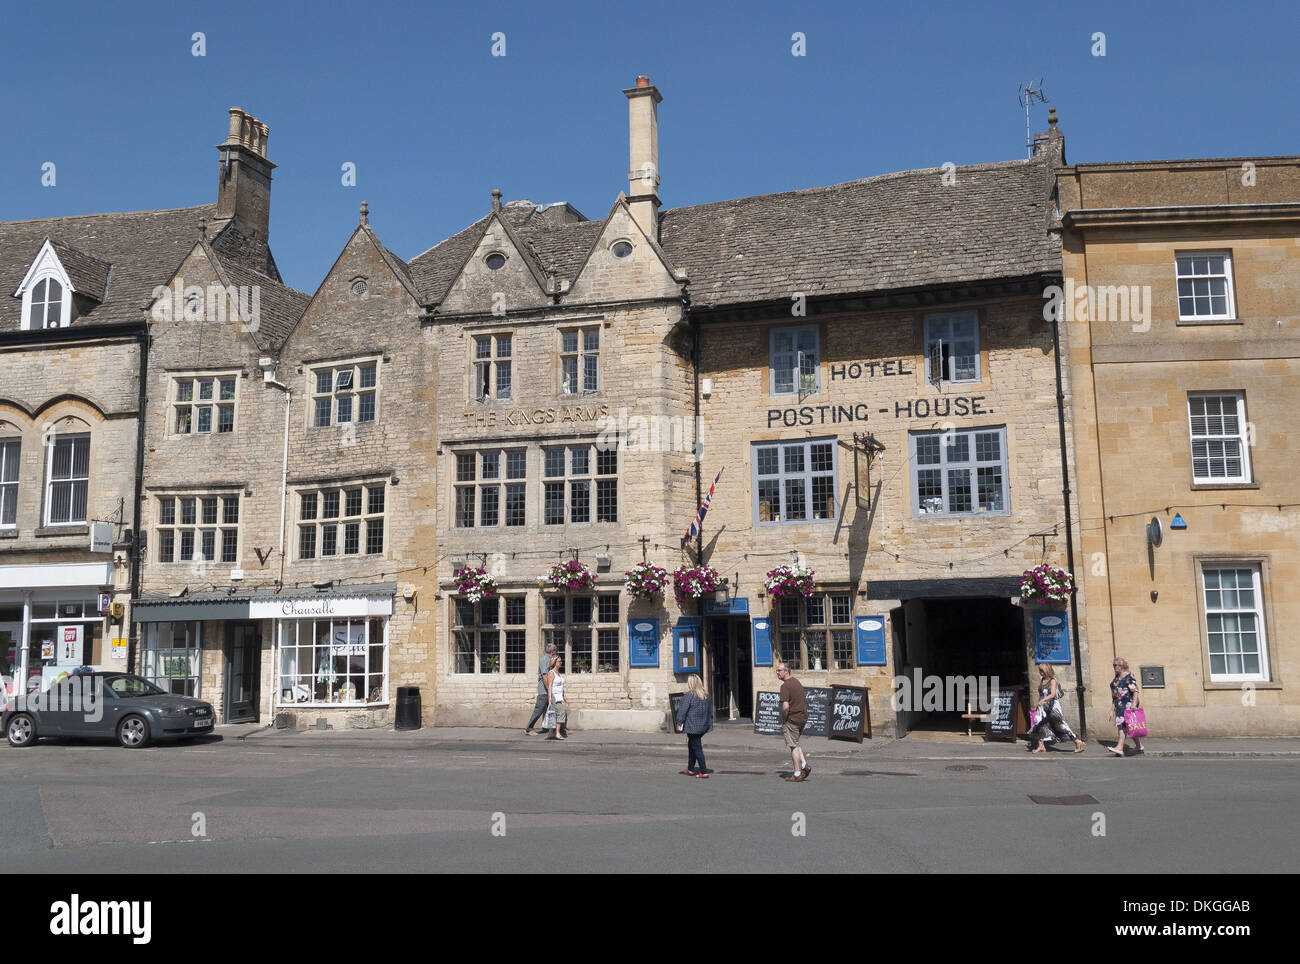 Market Square in the small market town of Stow-On-The-Wold in Gloucestershire, England, UK Stock Photo